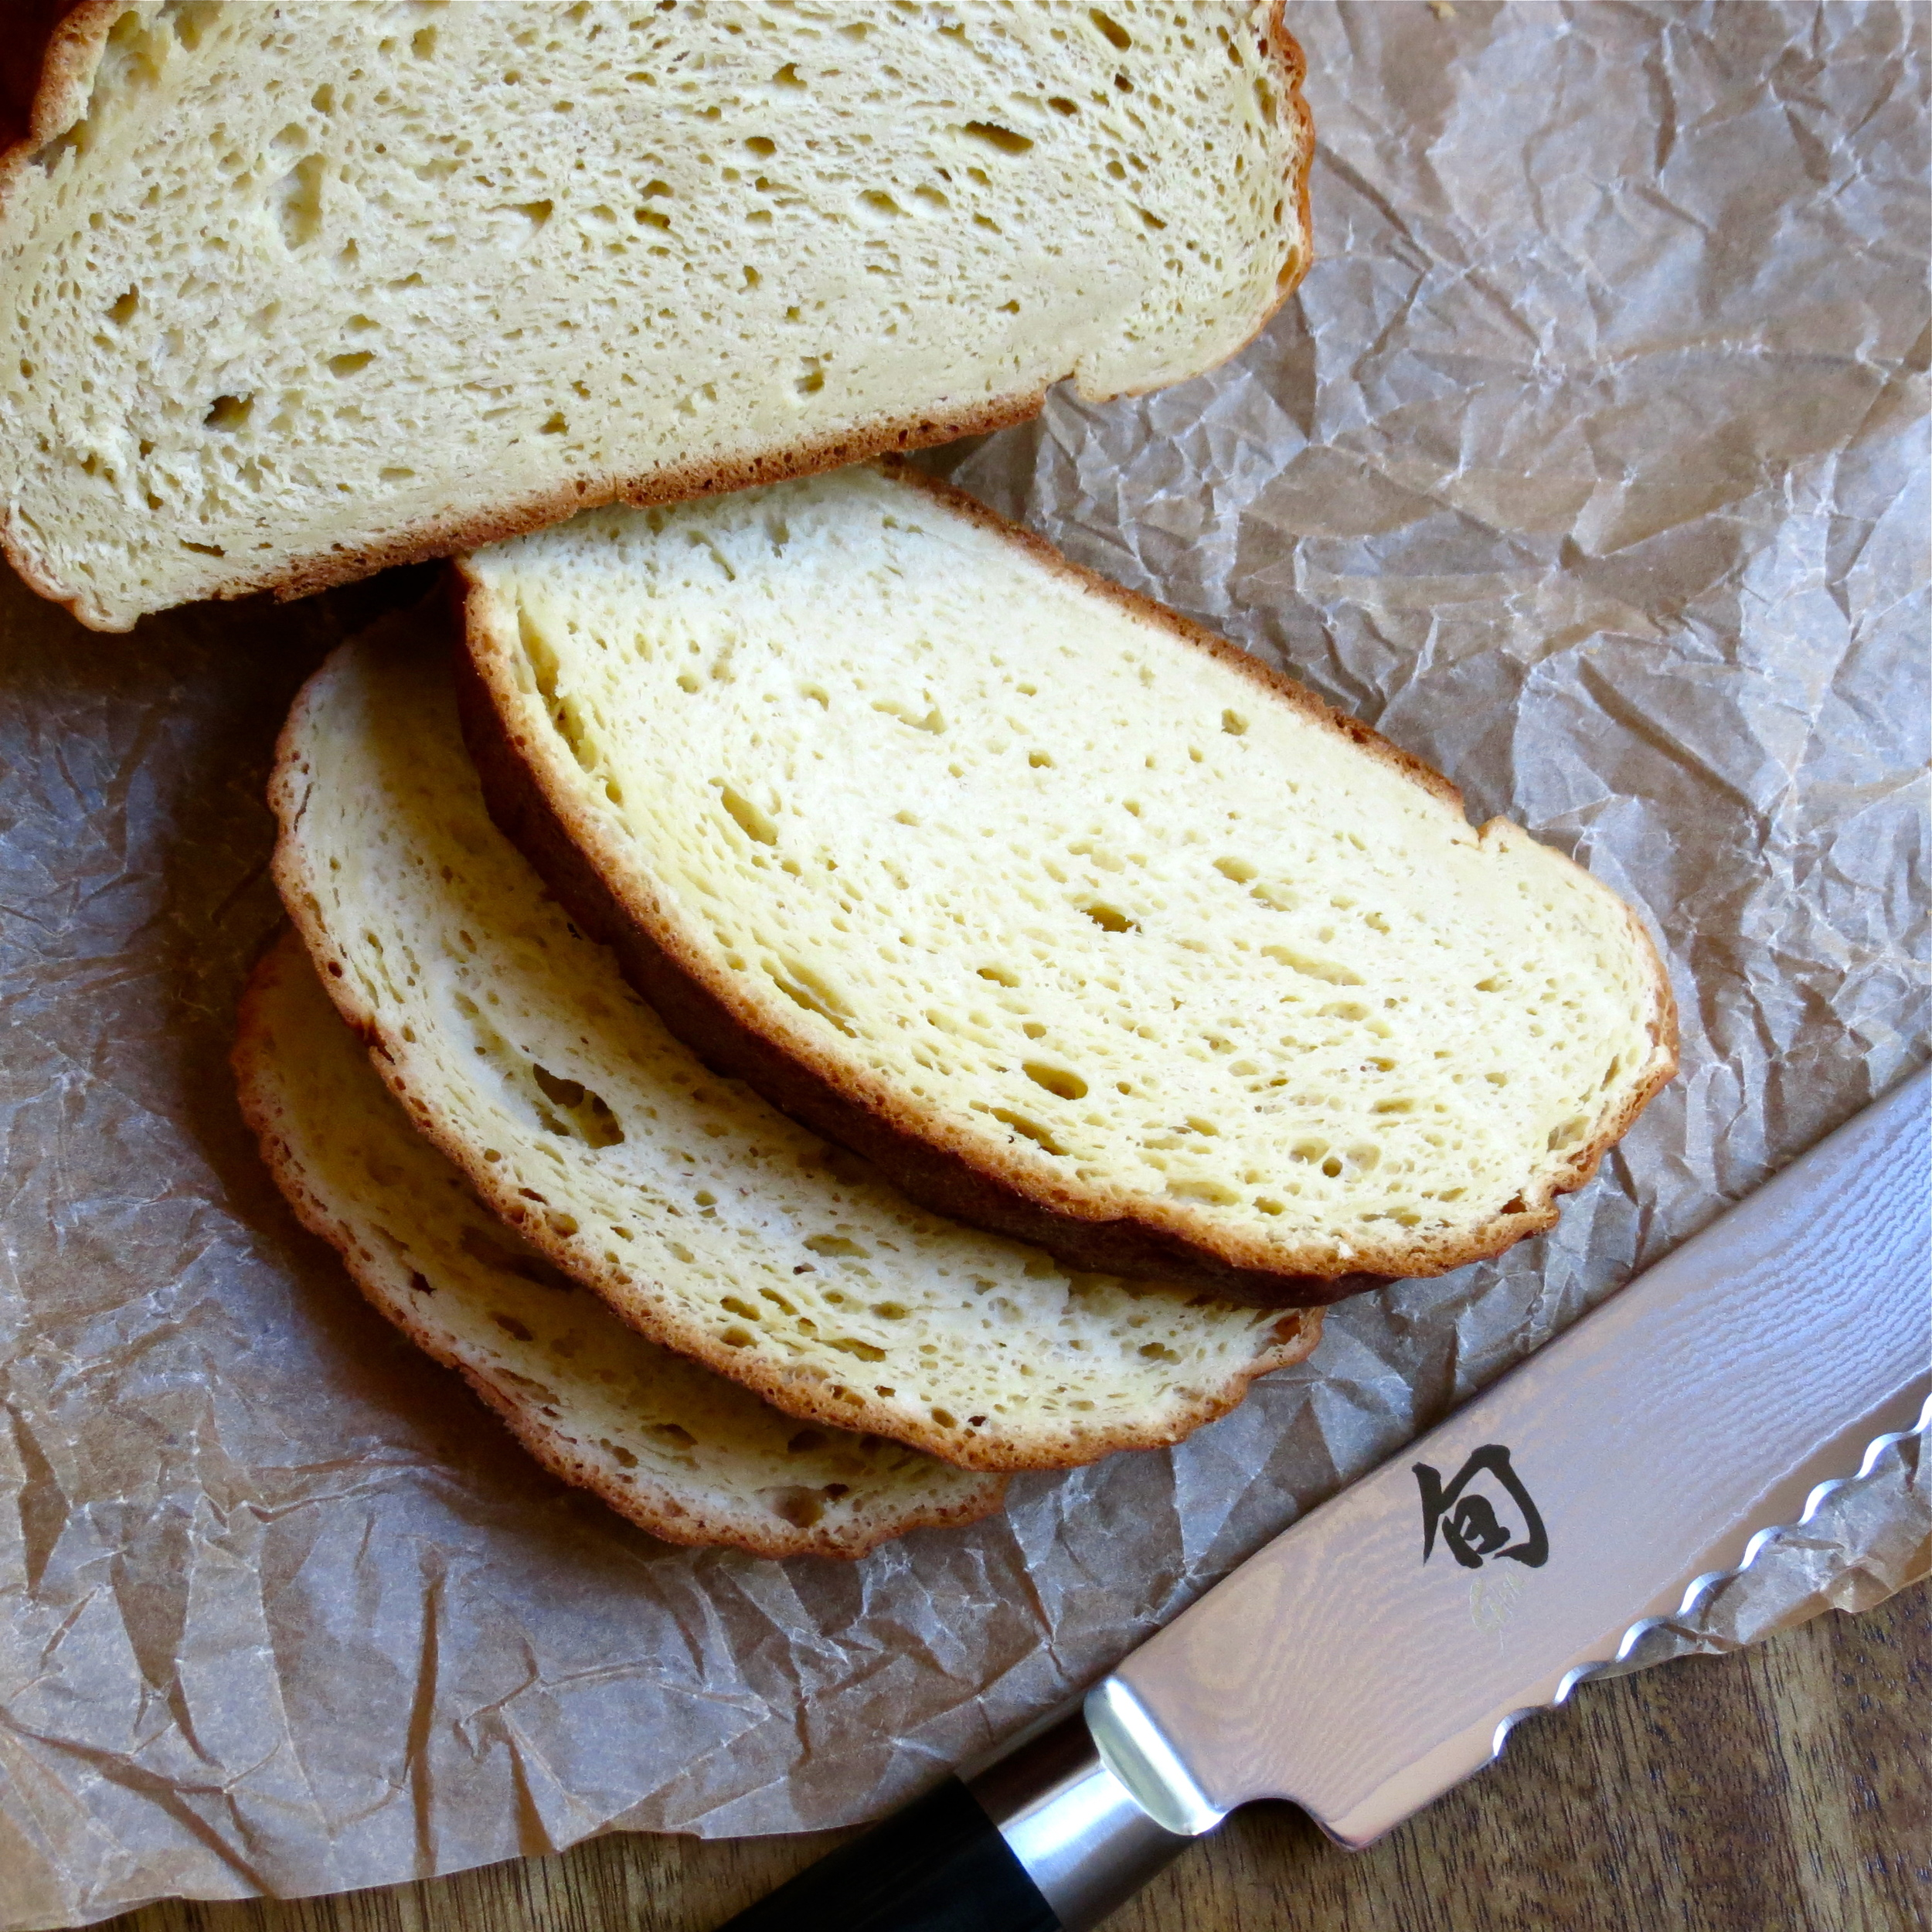 This bread is seriously as good as it looks!